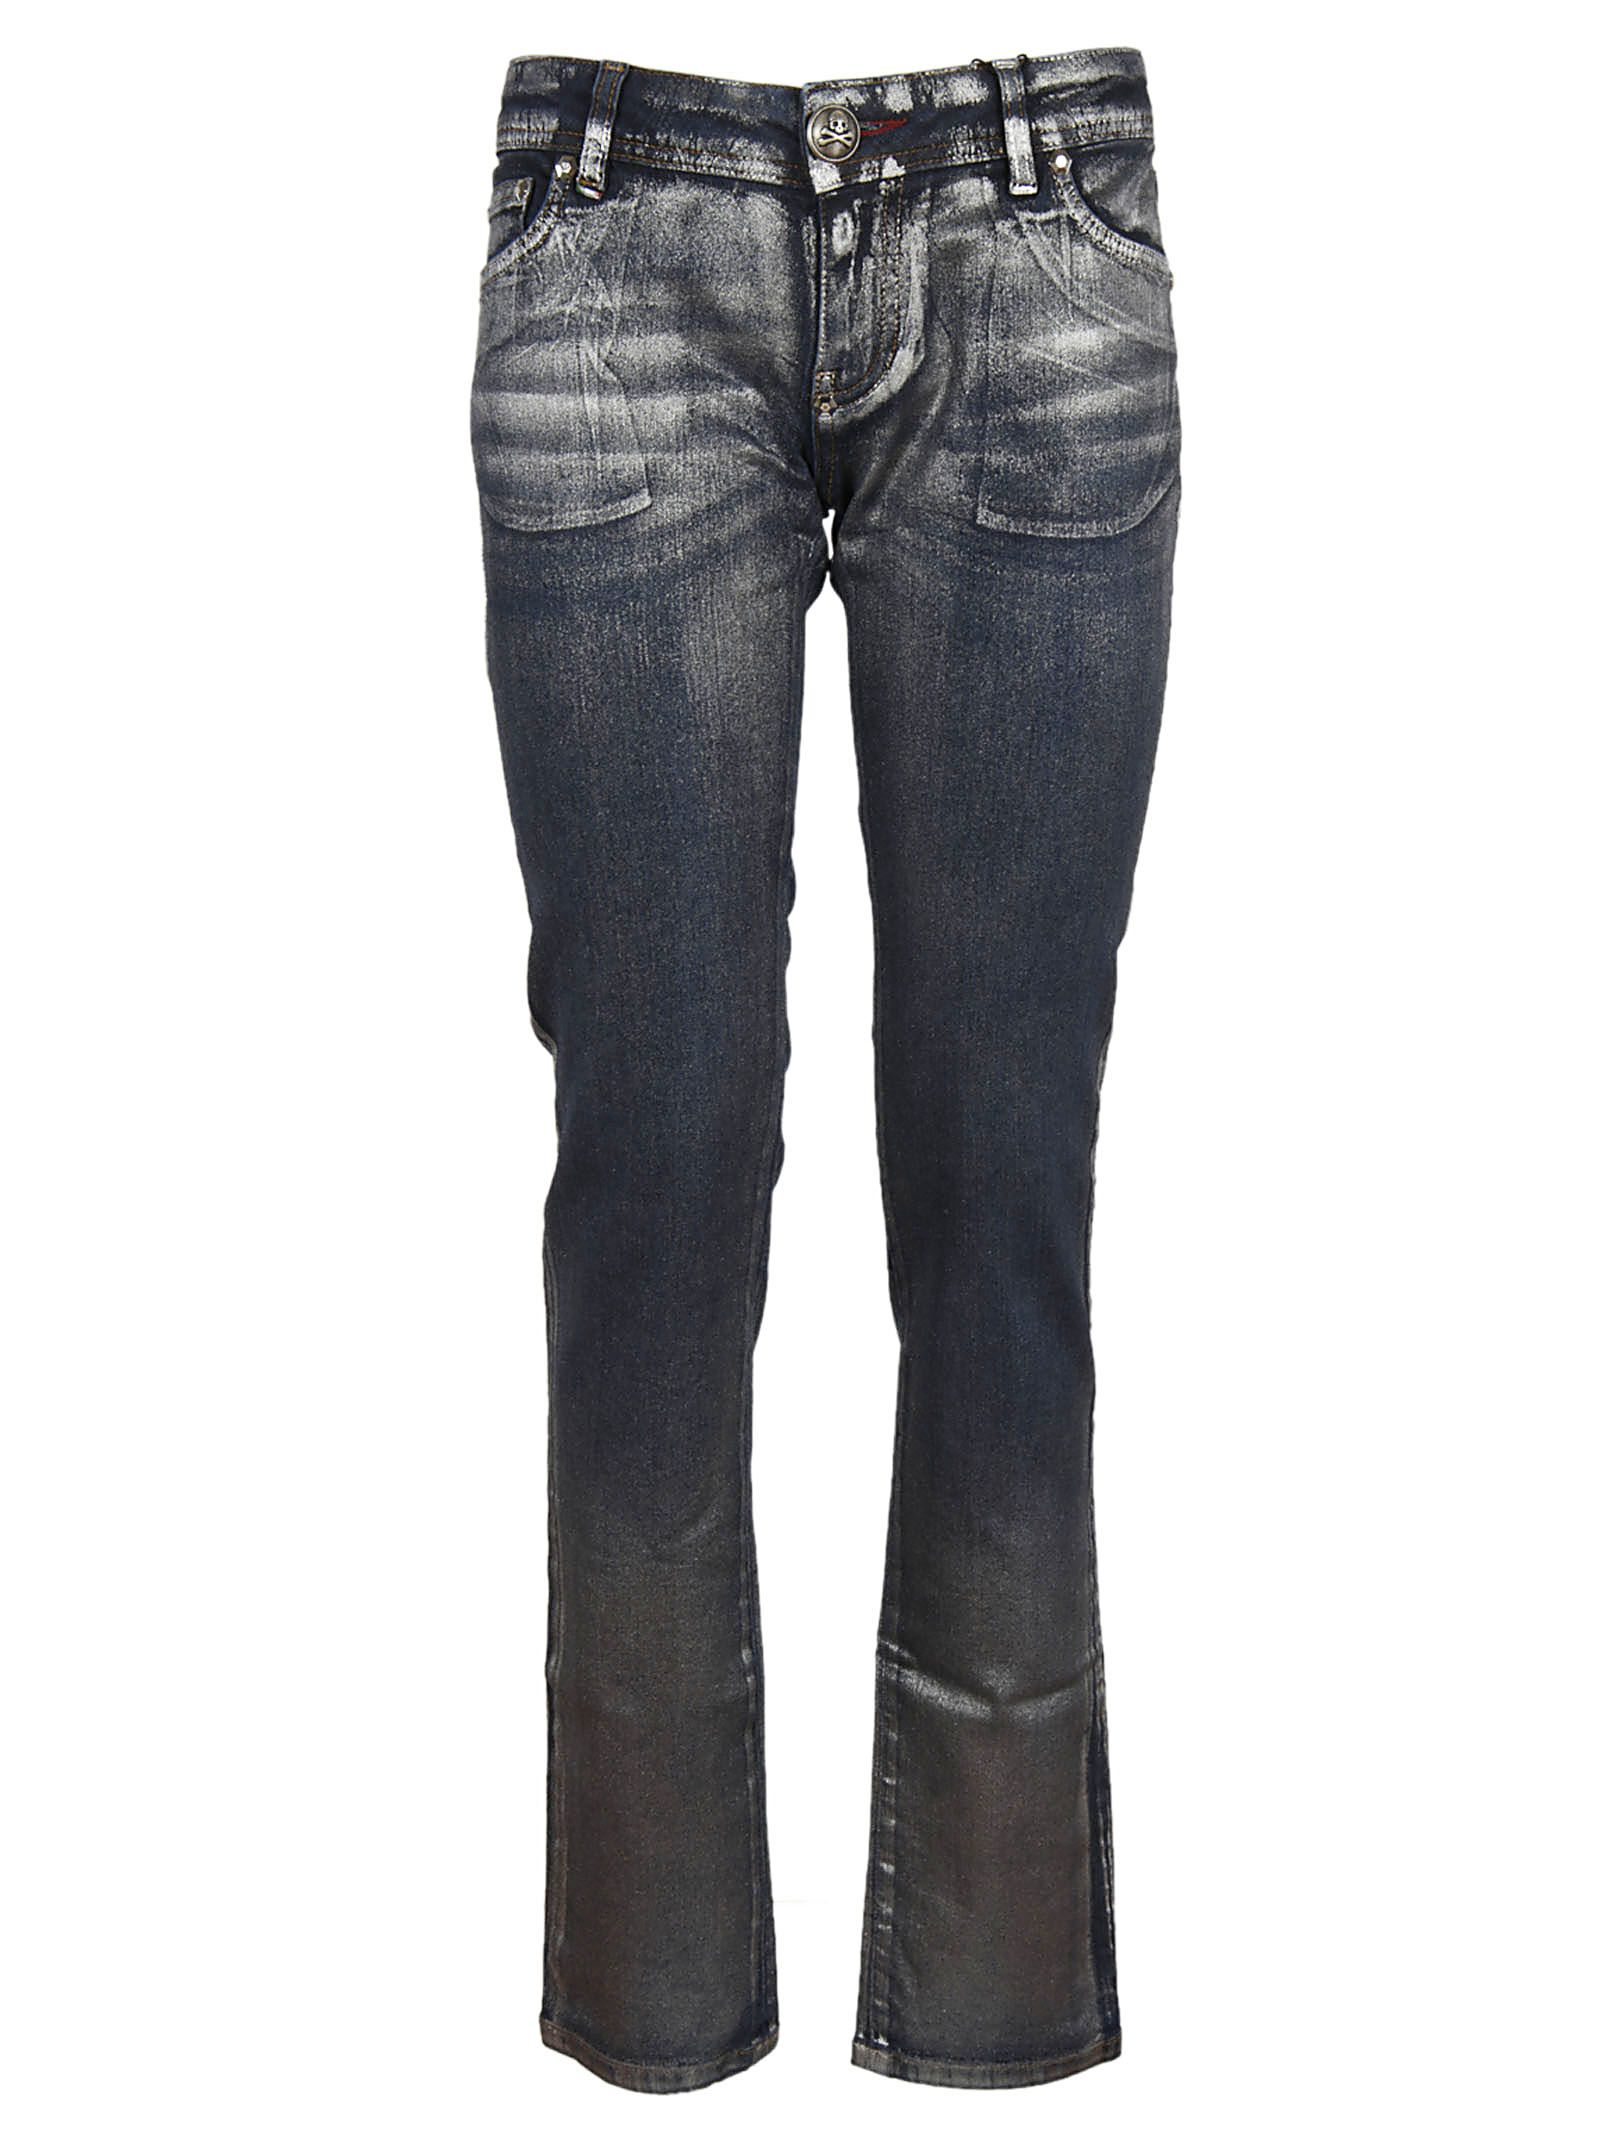 Philipp Plein Metal Shaded Jeans 8213786